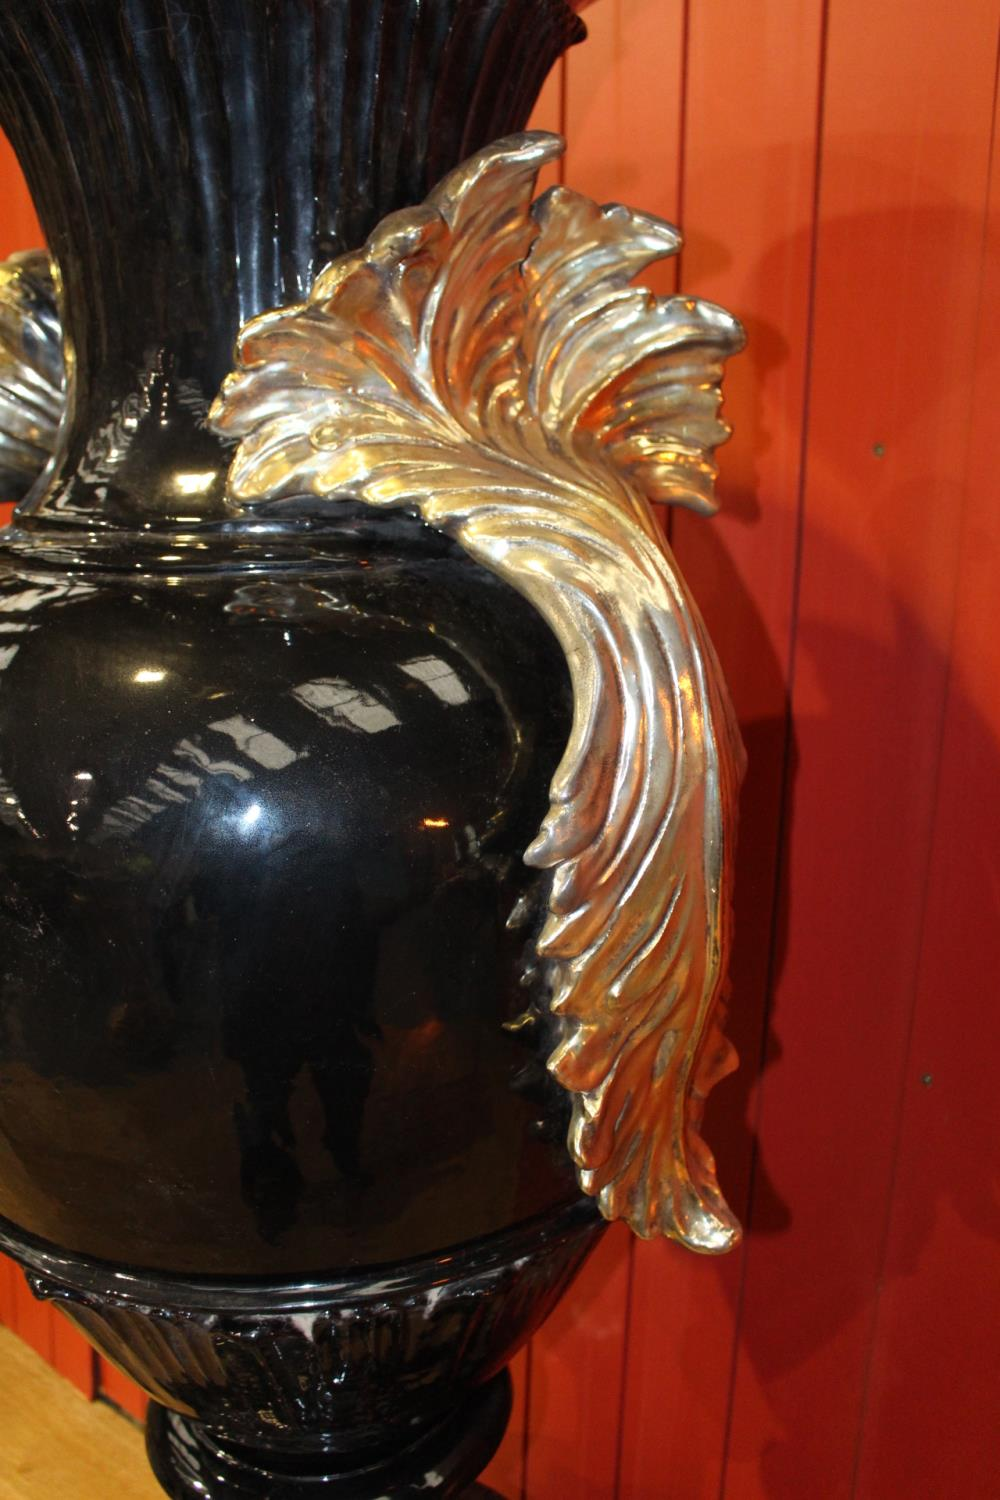 Ceccarelli Gold and black Italian hand painted ceramic urn. - Image 3 of 4